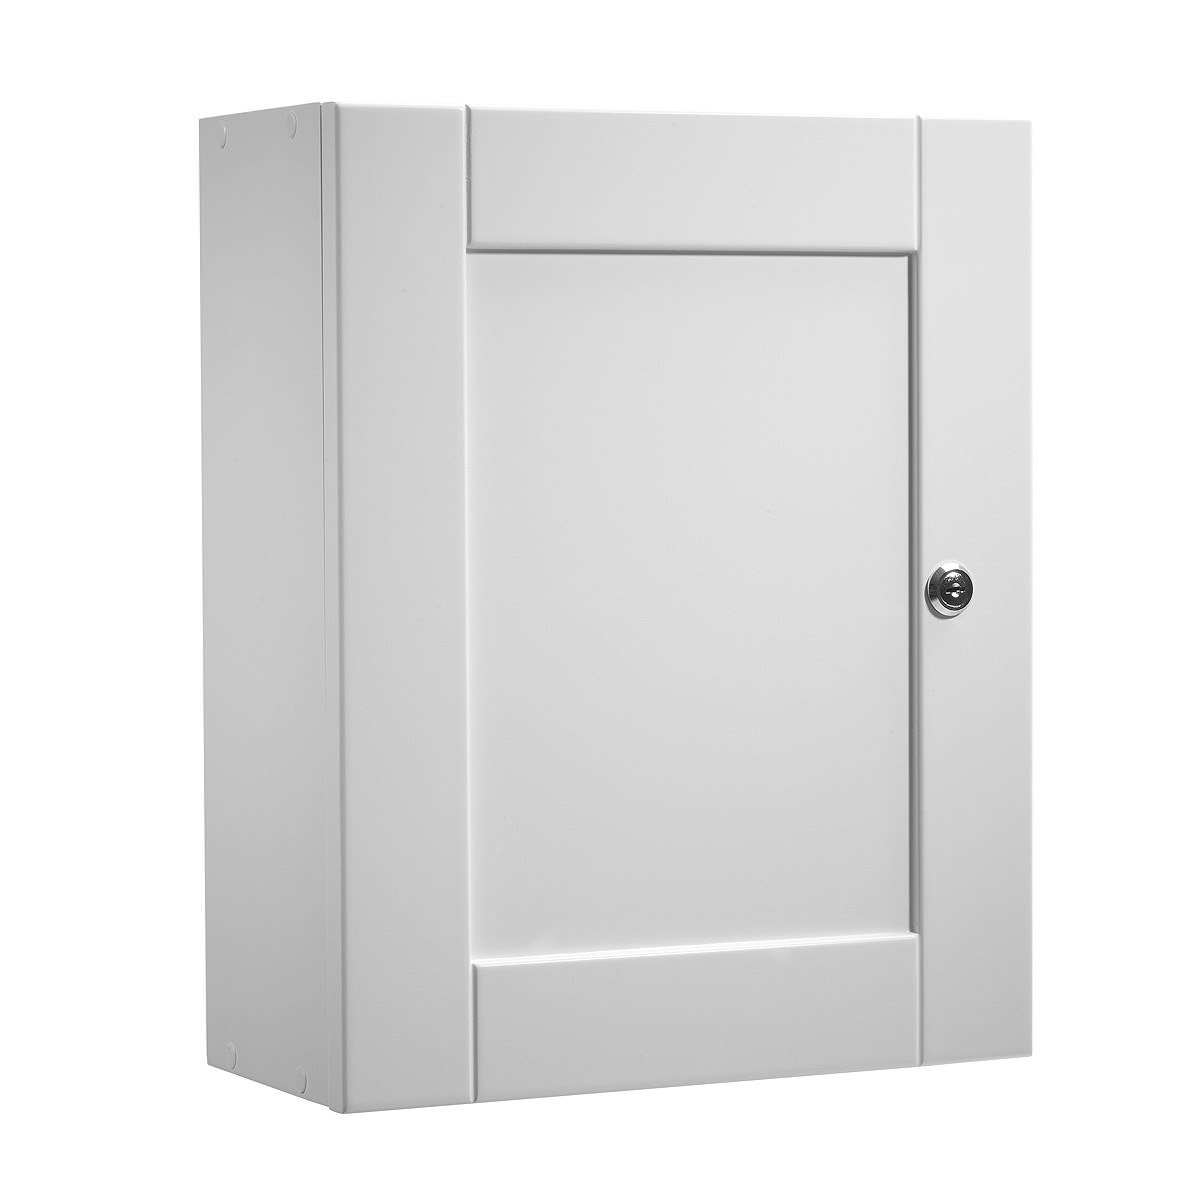 Lockable Bathroom Wall Cabinet1200 X 1200